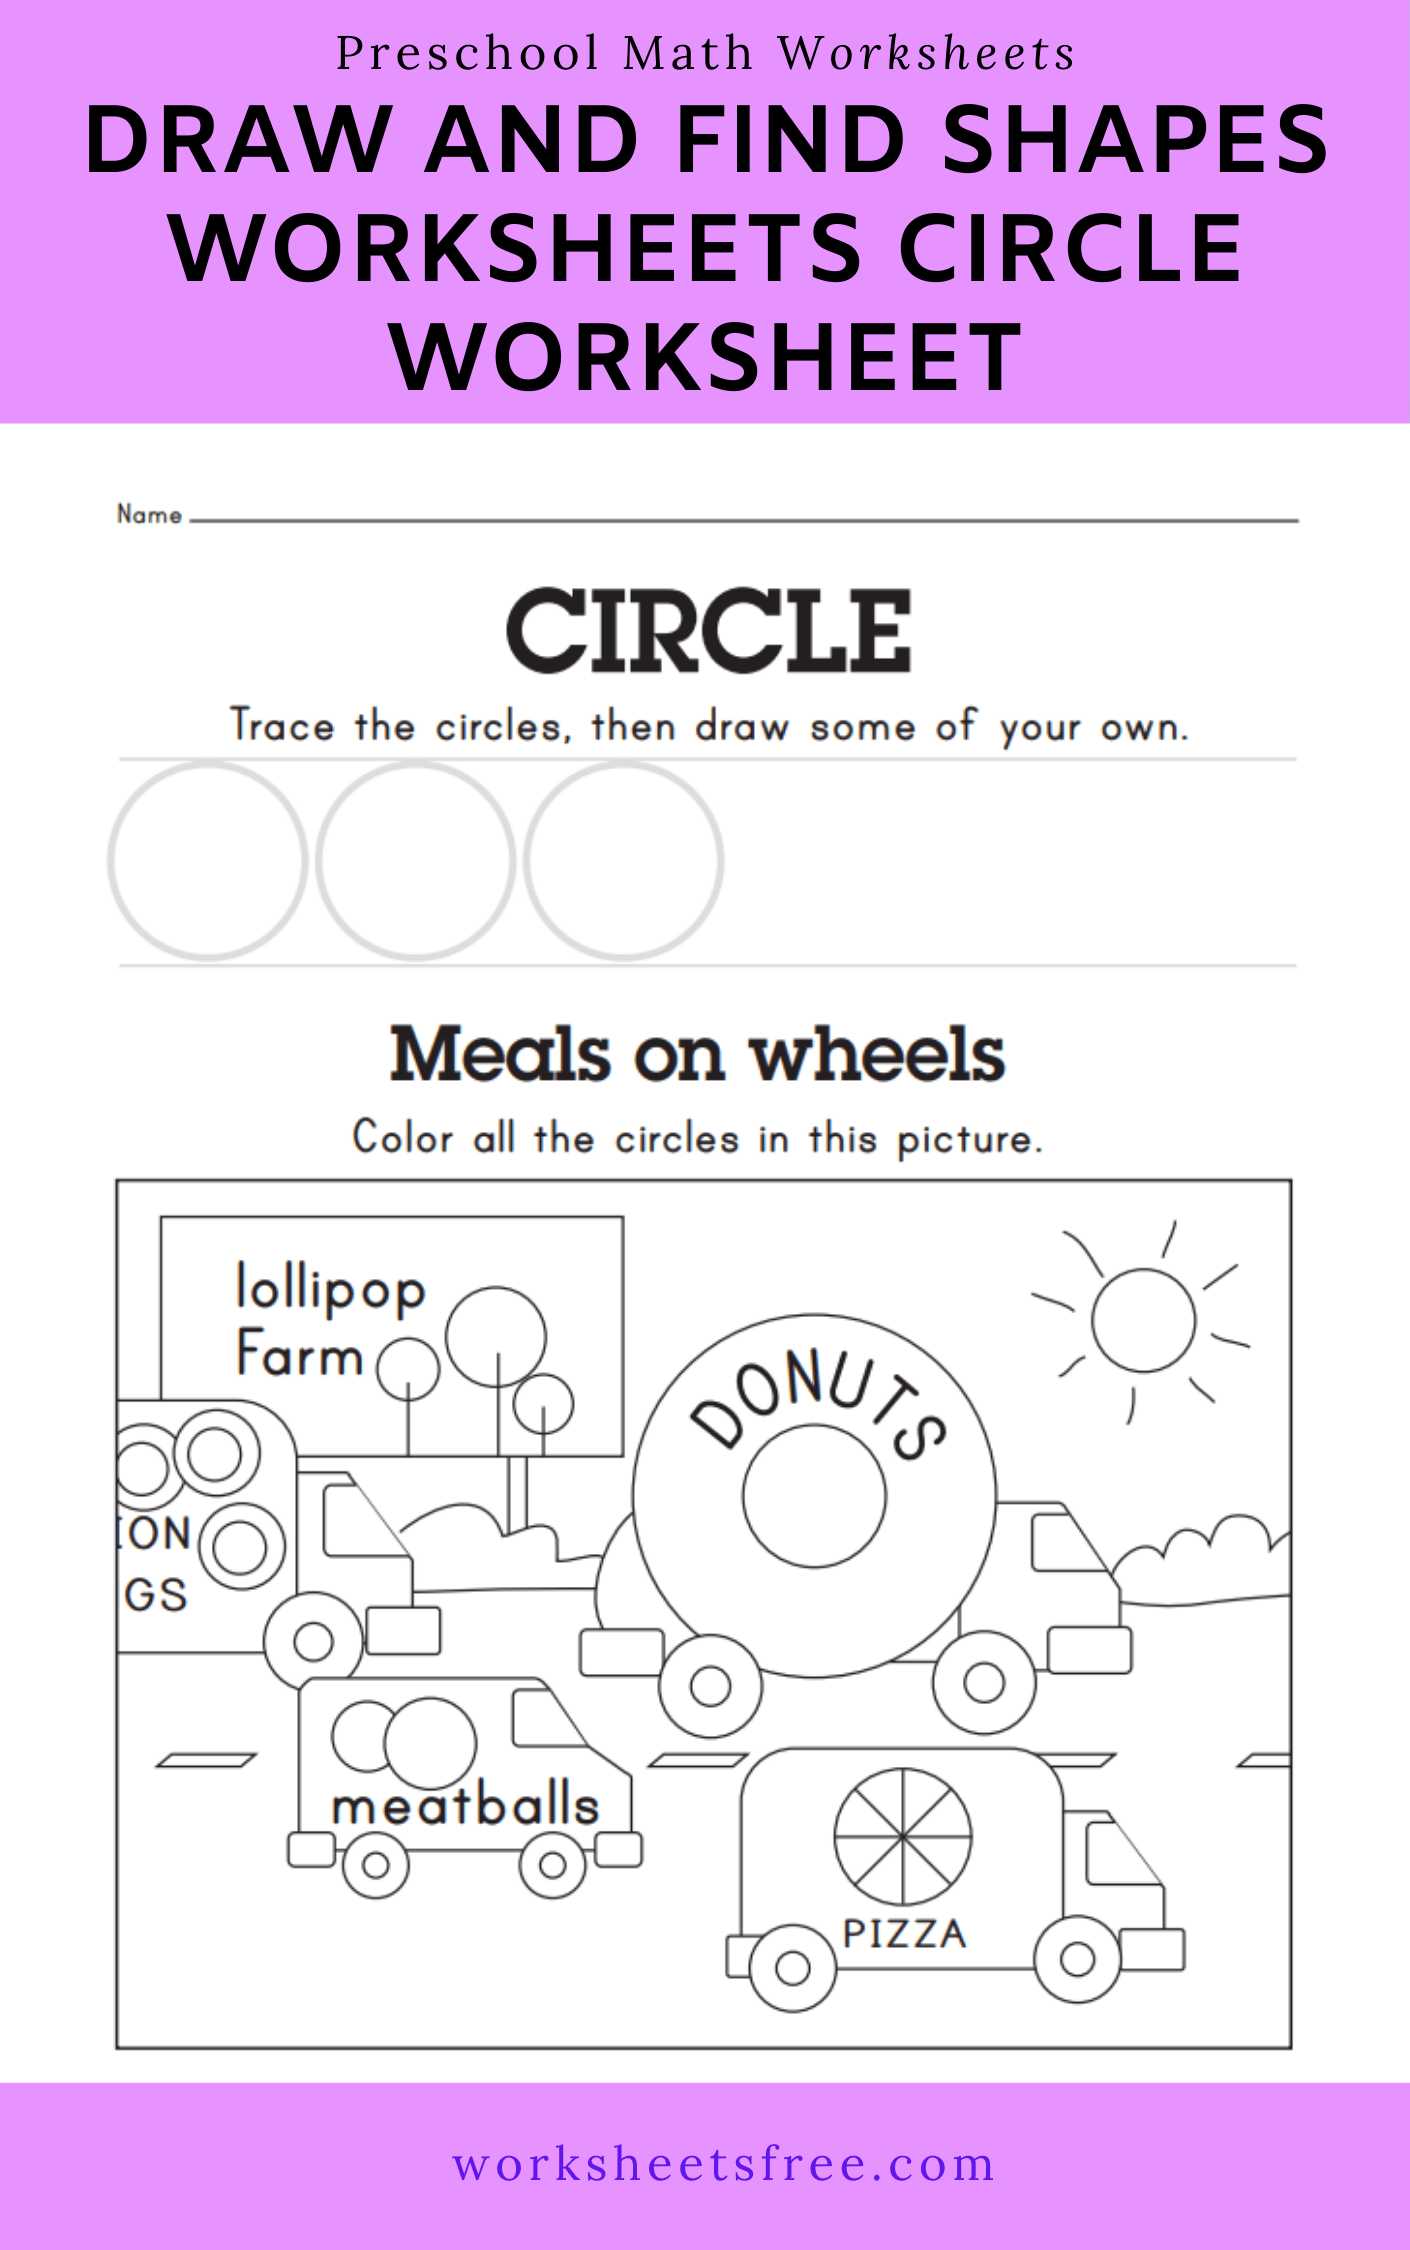 Draw And Find Shapes Worksheets Circle Worksheet